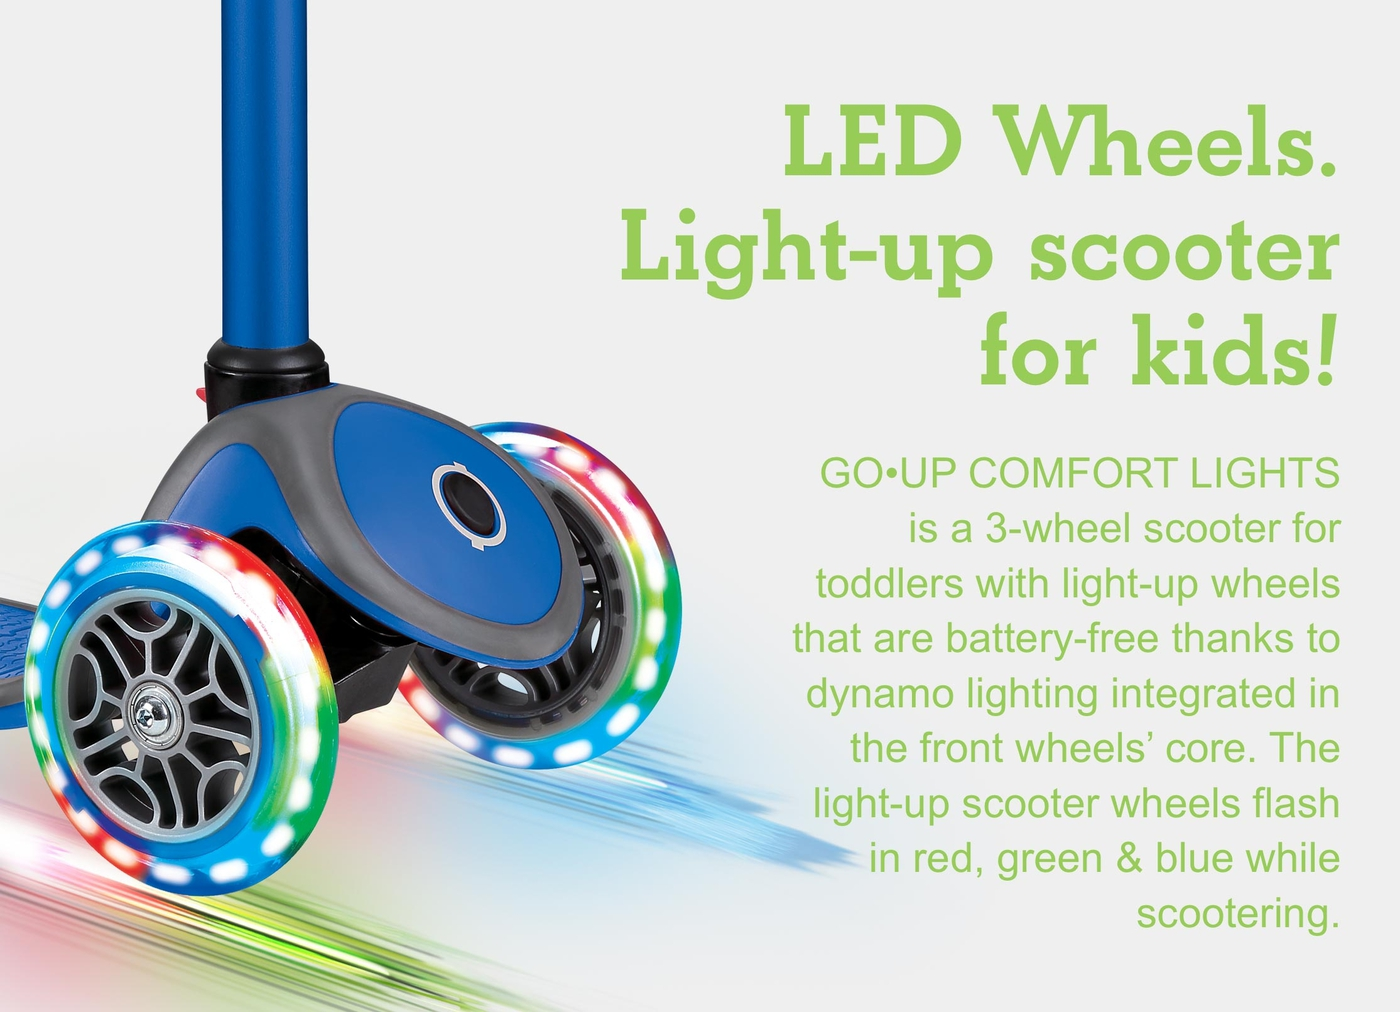 LED Wheels. Light-up scooter for kids!